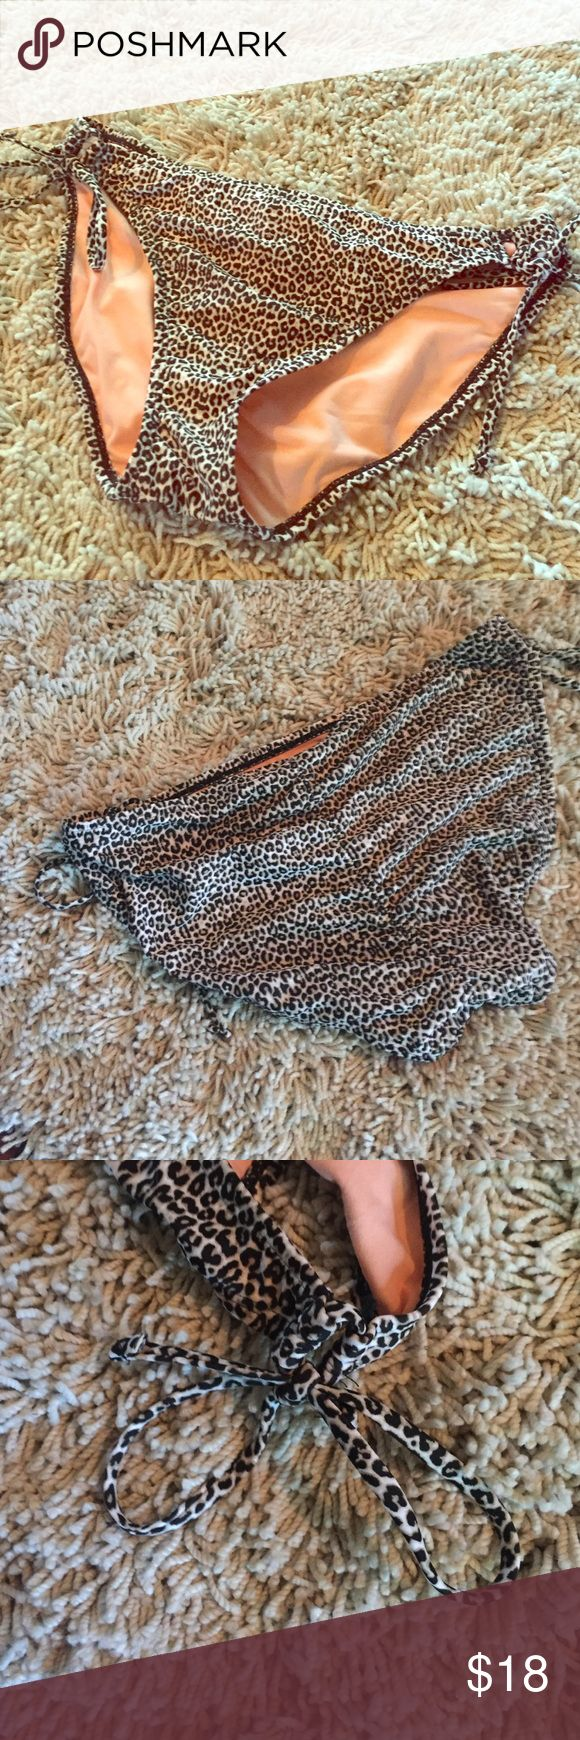 Hot Water side tie animal print bikini bottom XL Hot Water animal print extra large side tie bikini bottom moderate coverage. Never worn NWOT - for some reason I pulled them off when I got them thinking was keeping them but the top is to big for me. hot water Swim Bikinis